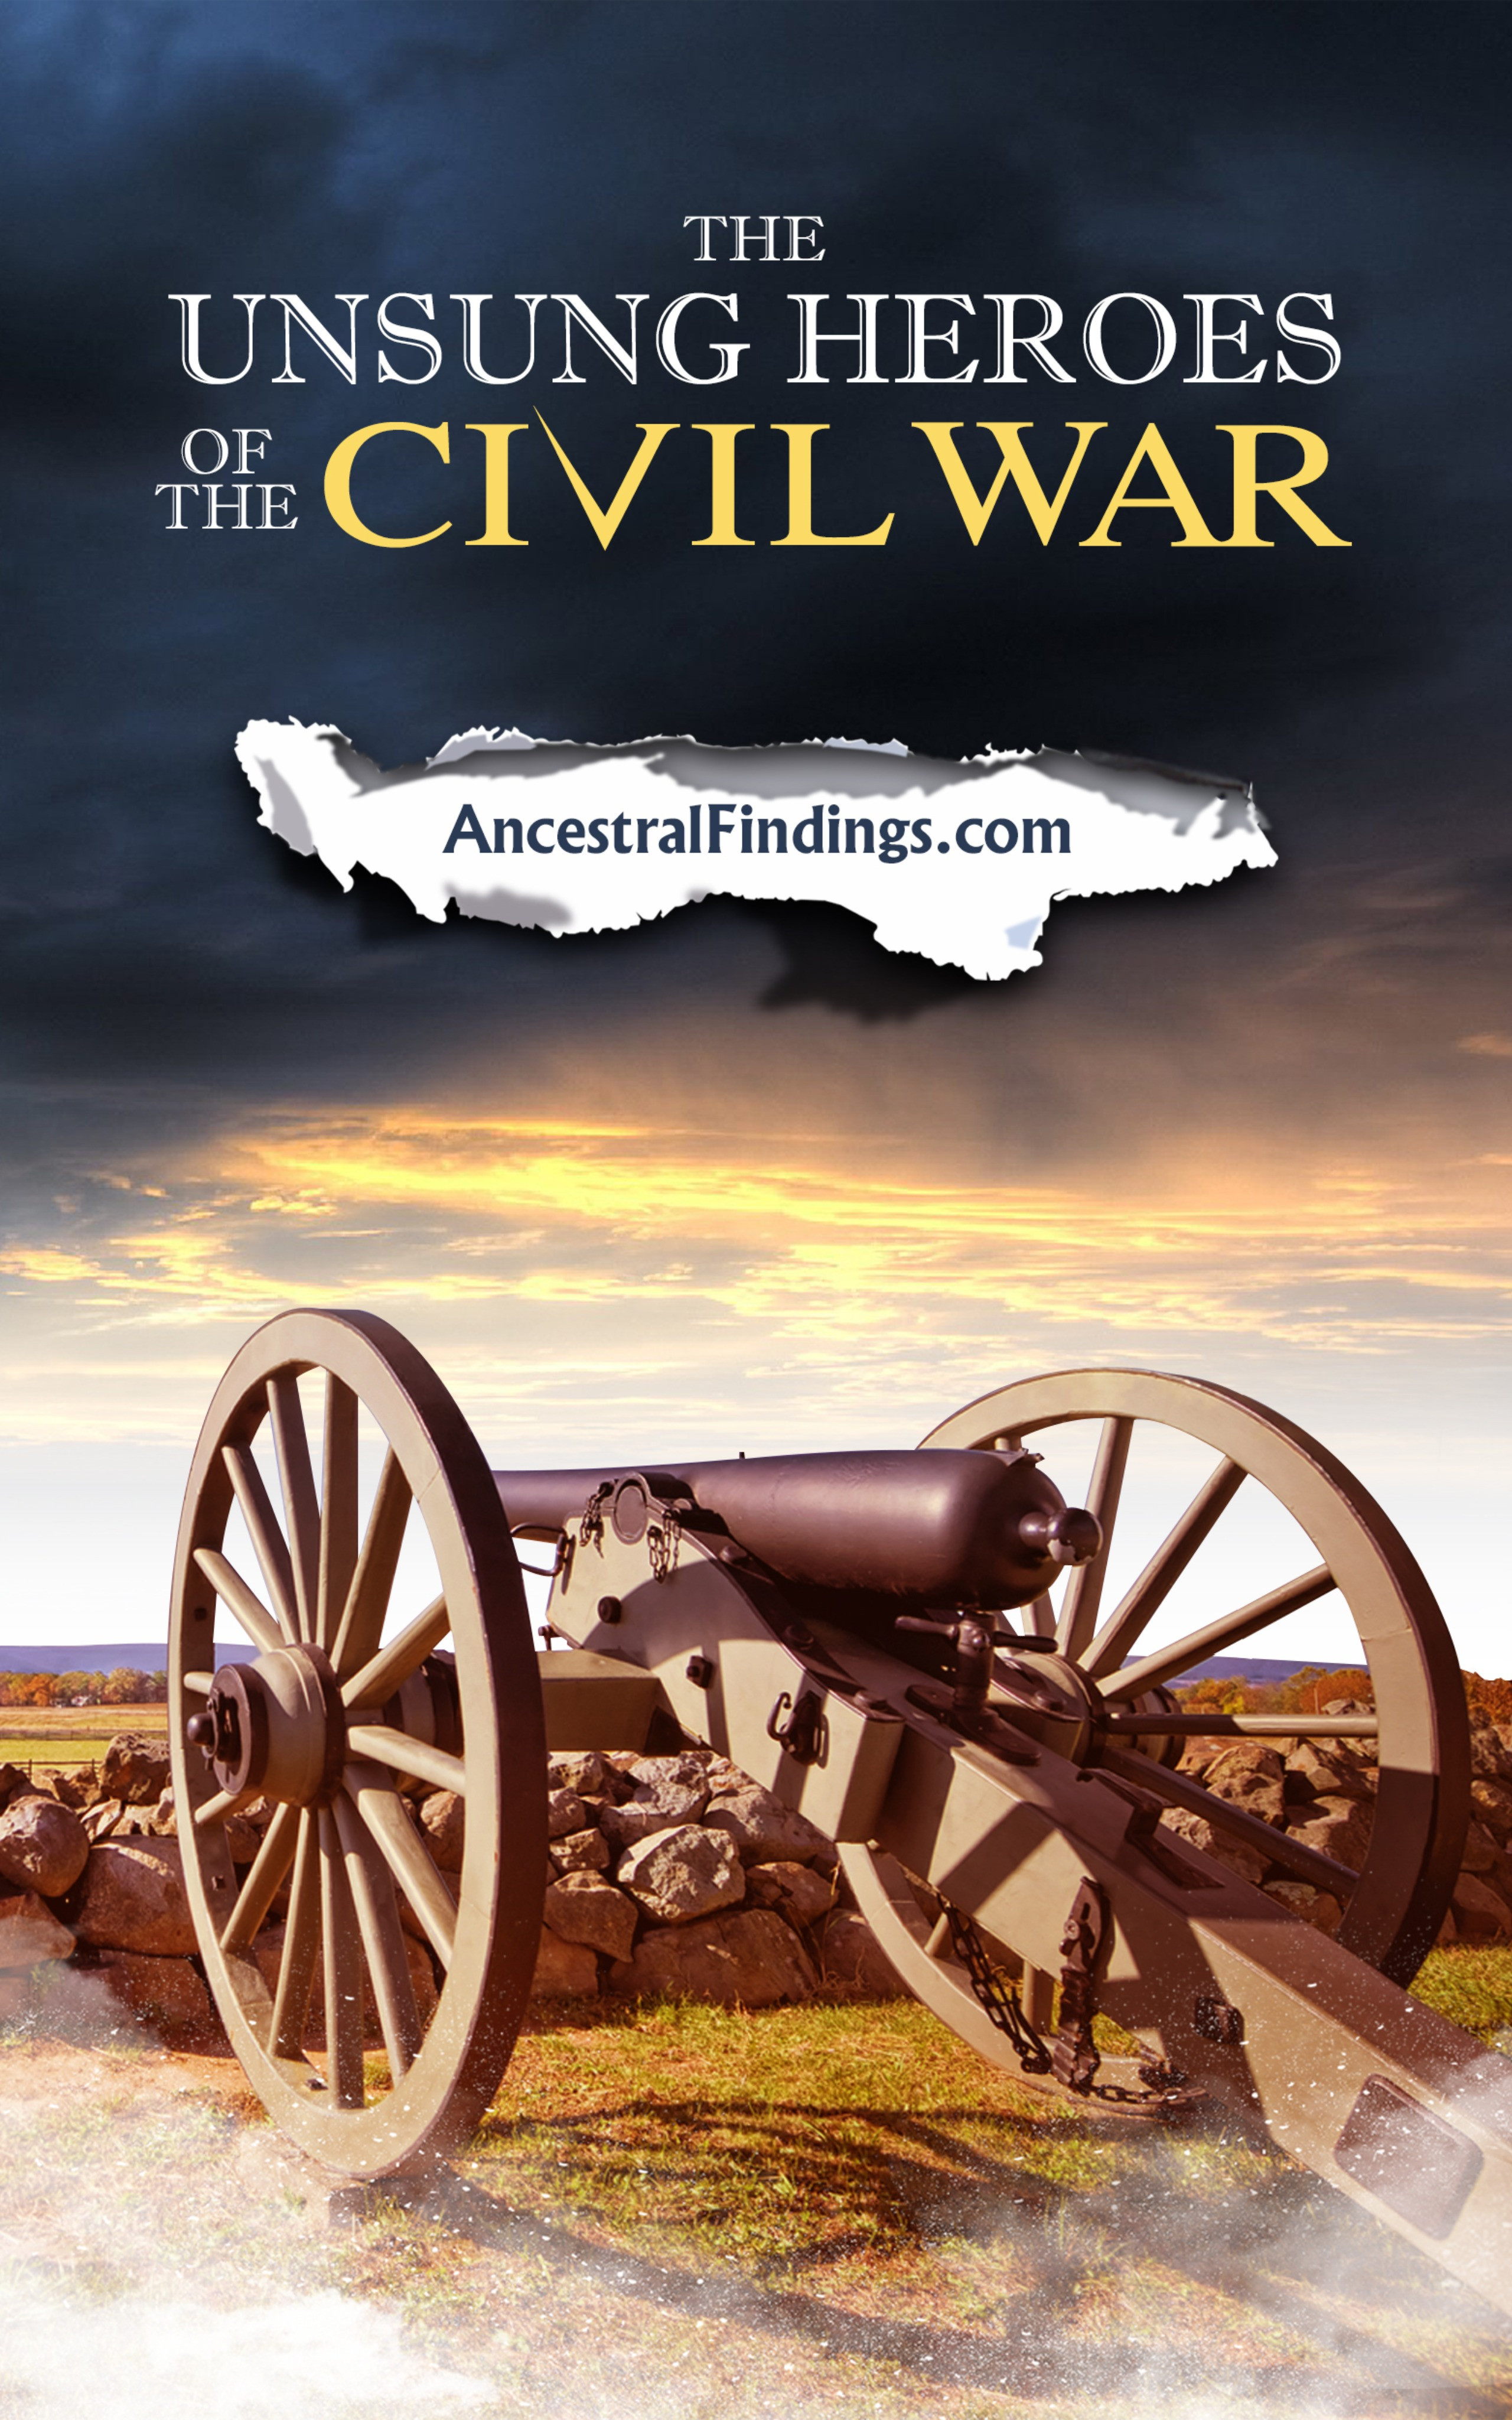 The Unsung Heroes of the Civil War